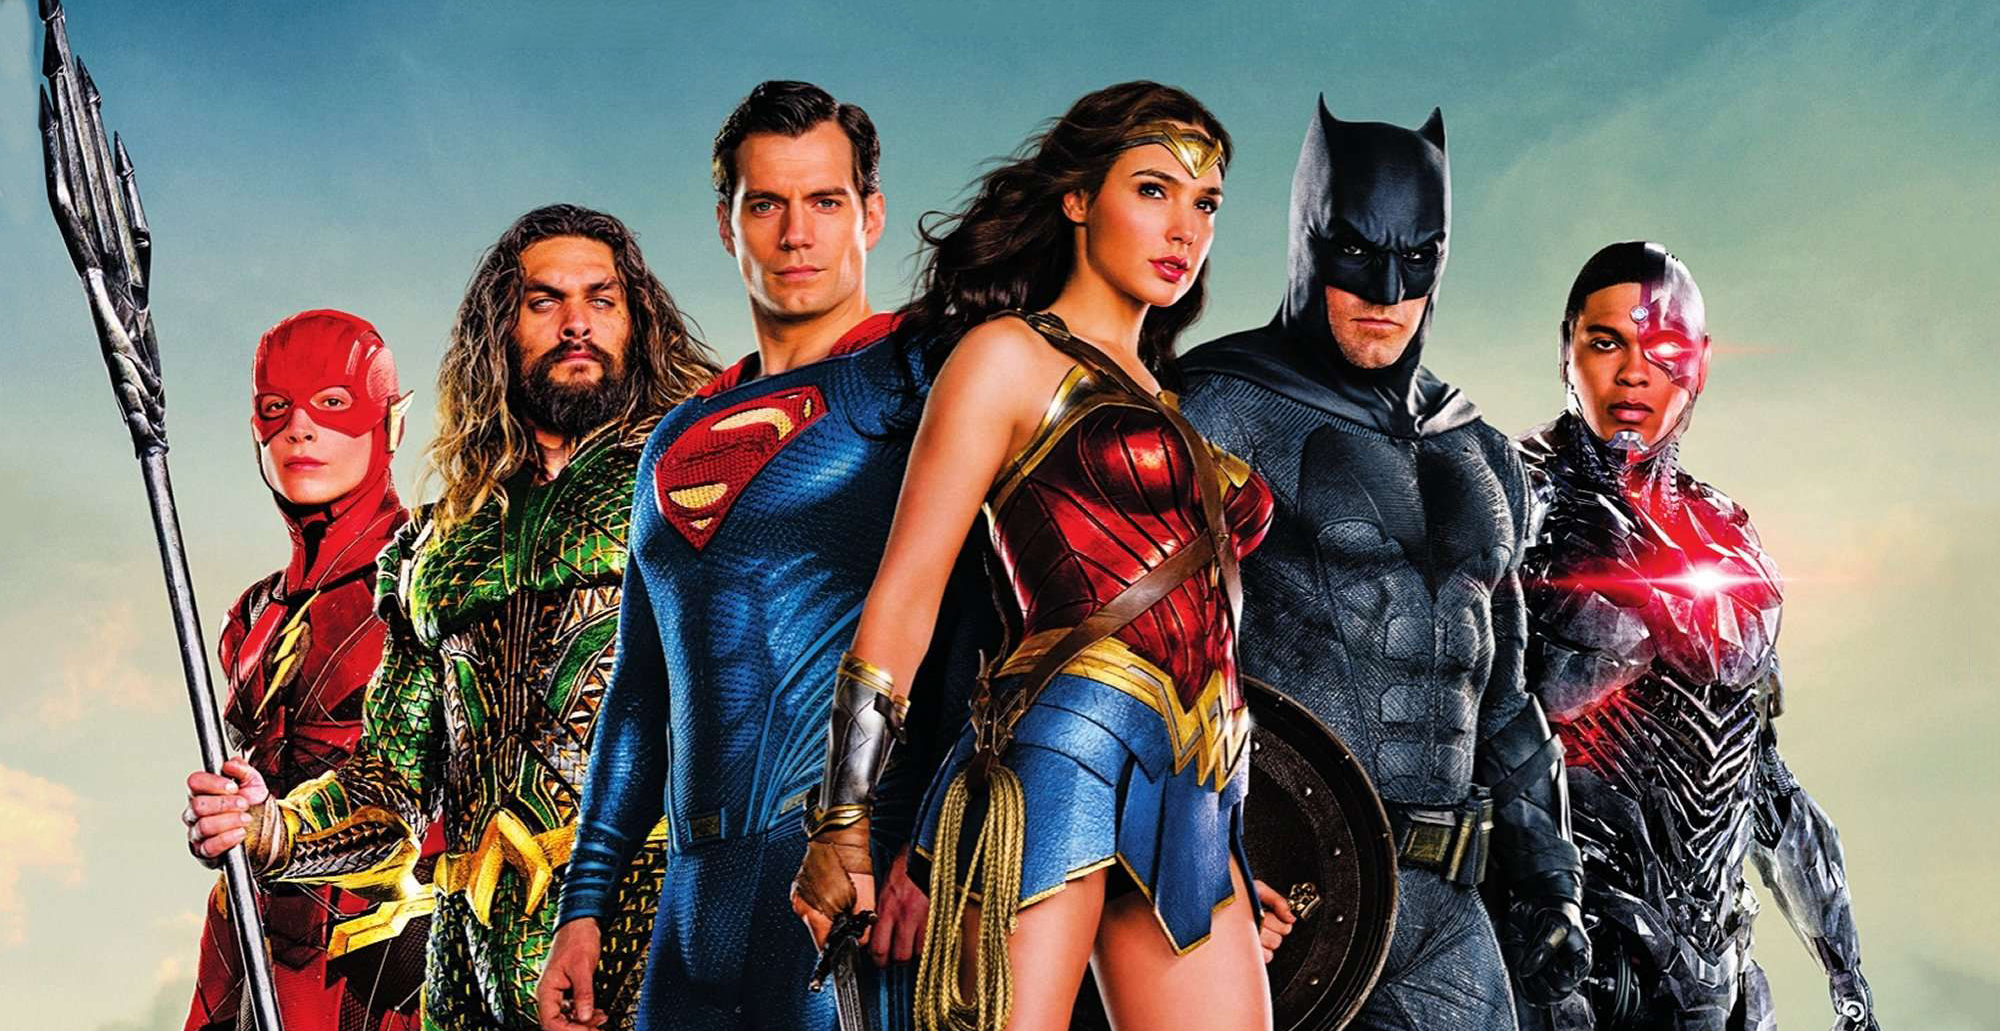 Justice League Movie Hd Movies 4k Wallpapers Images: Justice League Movie Poster, HD Movies, 4k Wallpapers